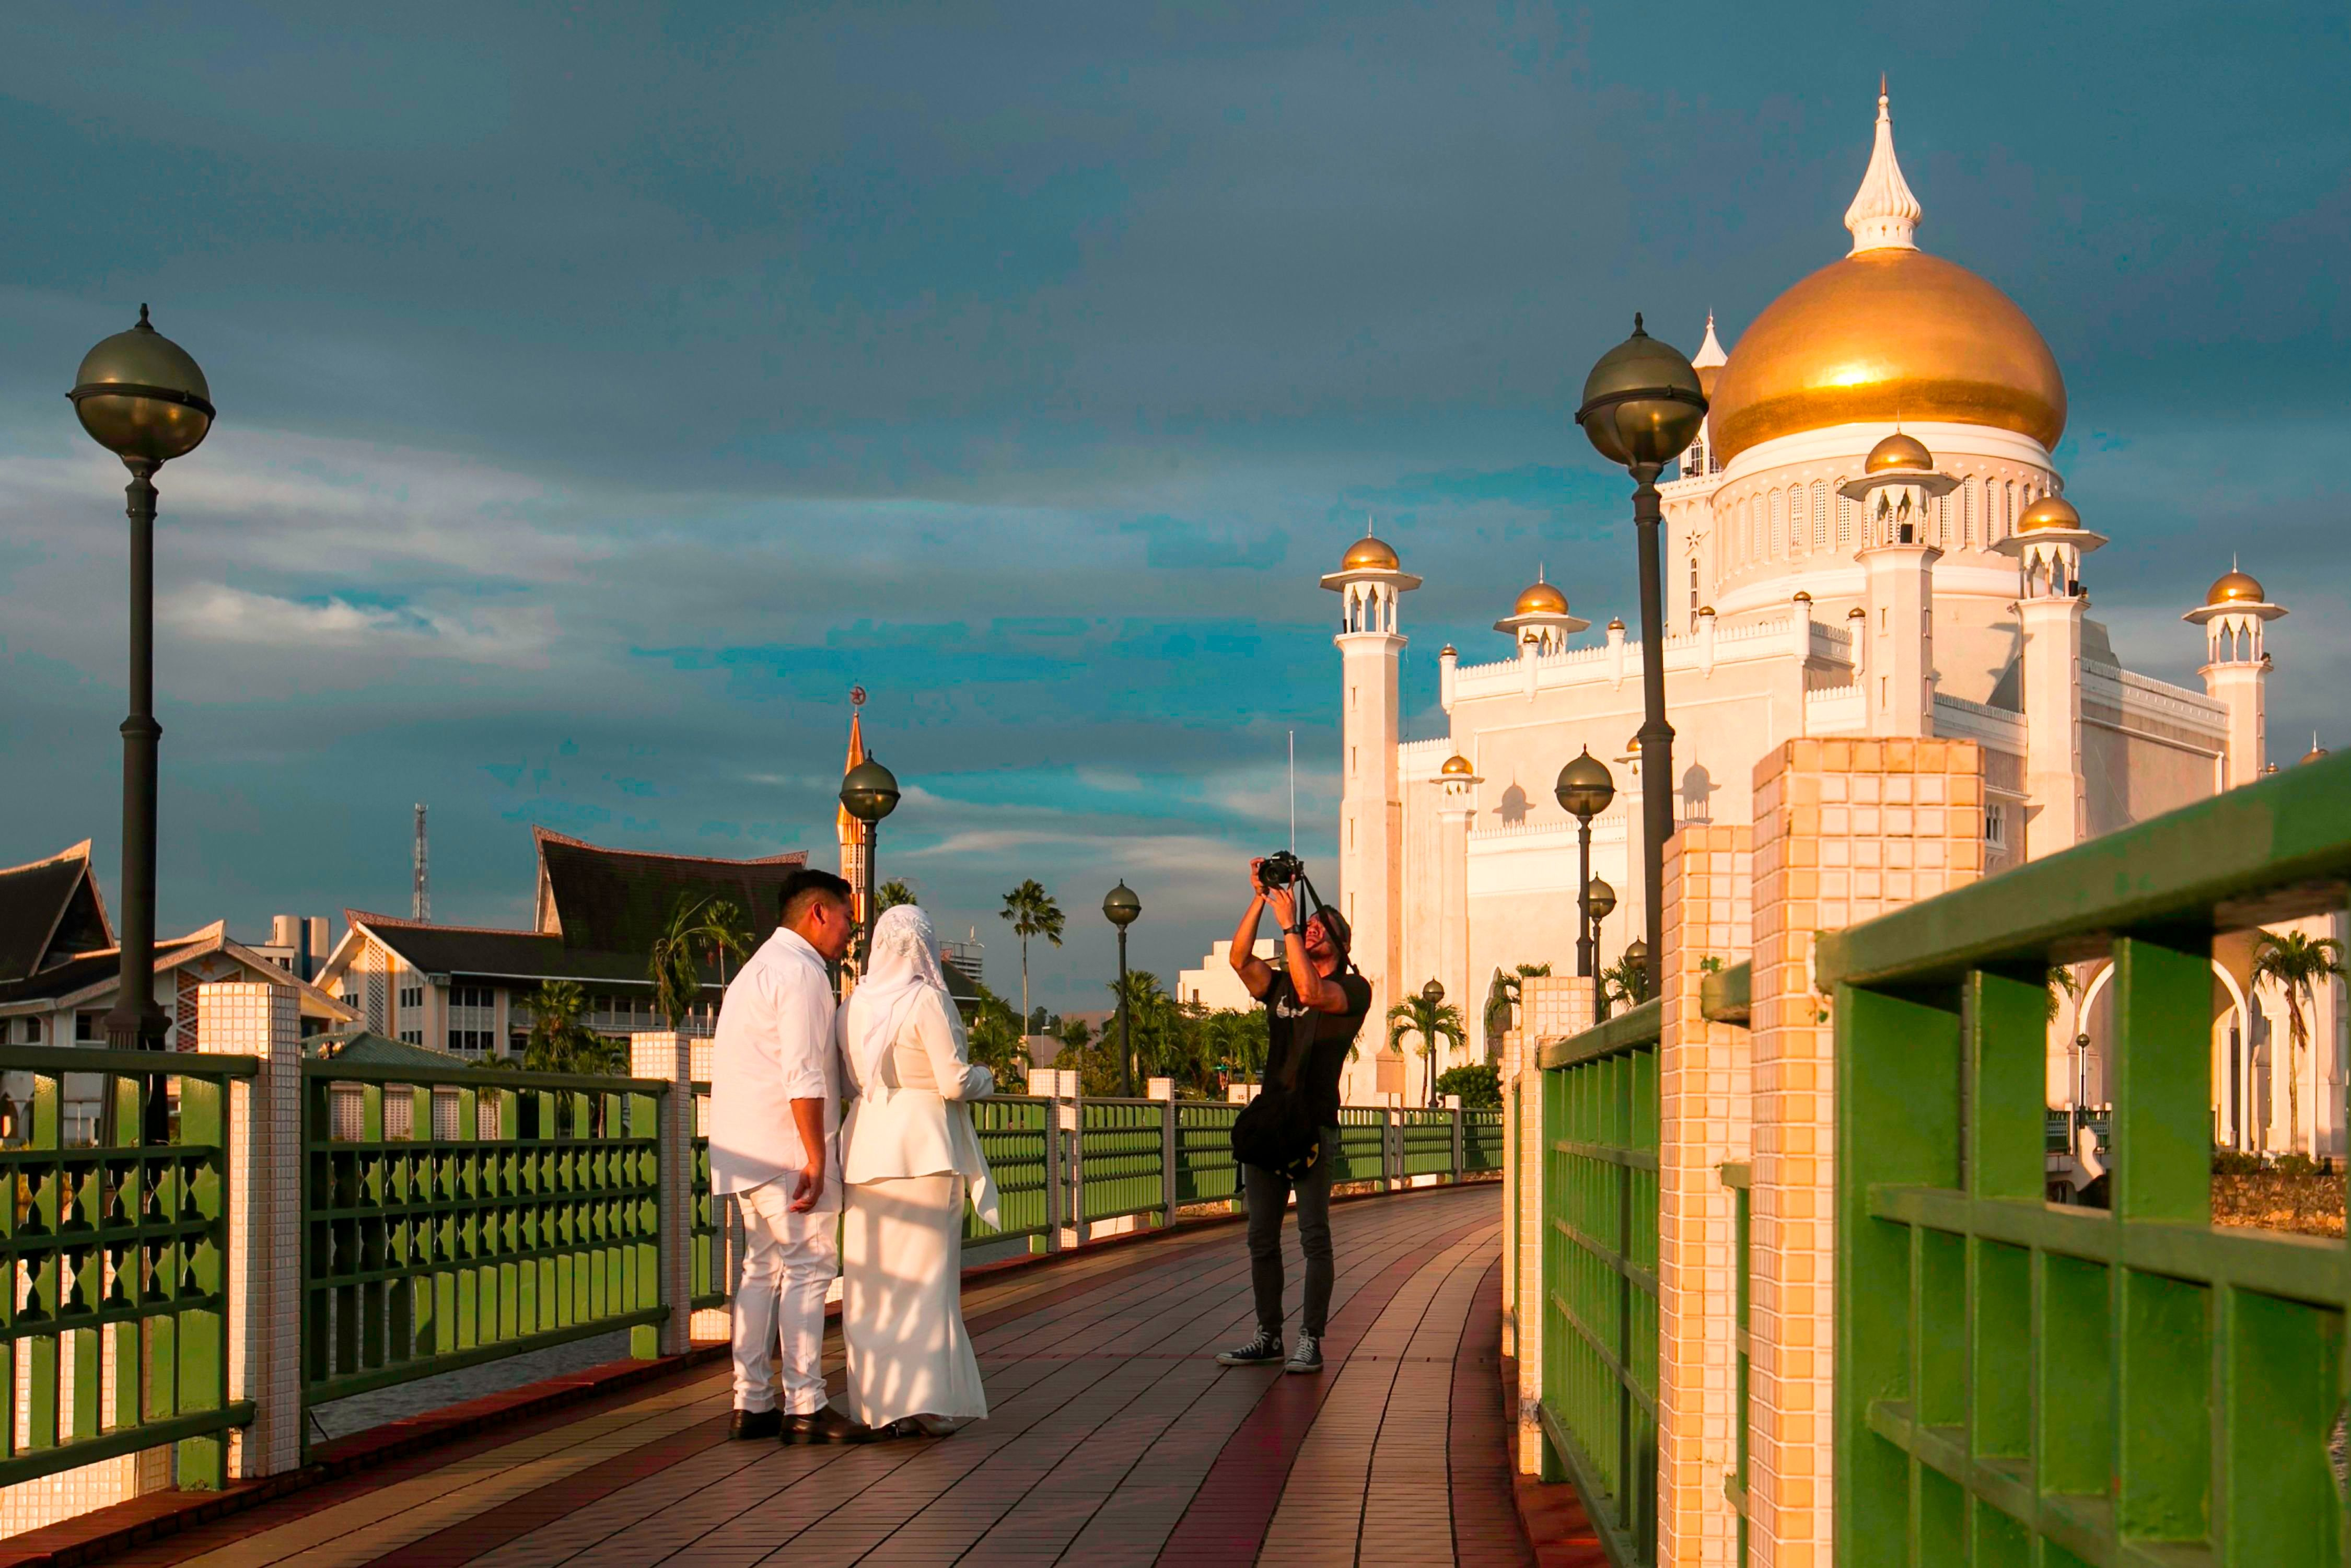 TOPSHOT - In this picture taken on April 1, 2019 a newlywed couple has their photographs taken at the Sultan Omar Ali Saifuddien mosque in Bandar Seri Begawan. - The United Nations decried on April 1 new 'cruel and inhuman' laws set to take effect in Brunei this week which impose death by stoning for gay sex and adultery, and amputations for theft. (Photo by - / AFP) / Brunei OUT        (Photo credit should read -/AFP/Getty Images)